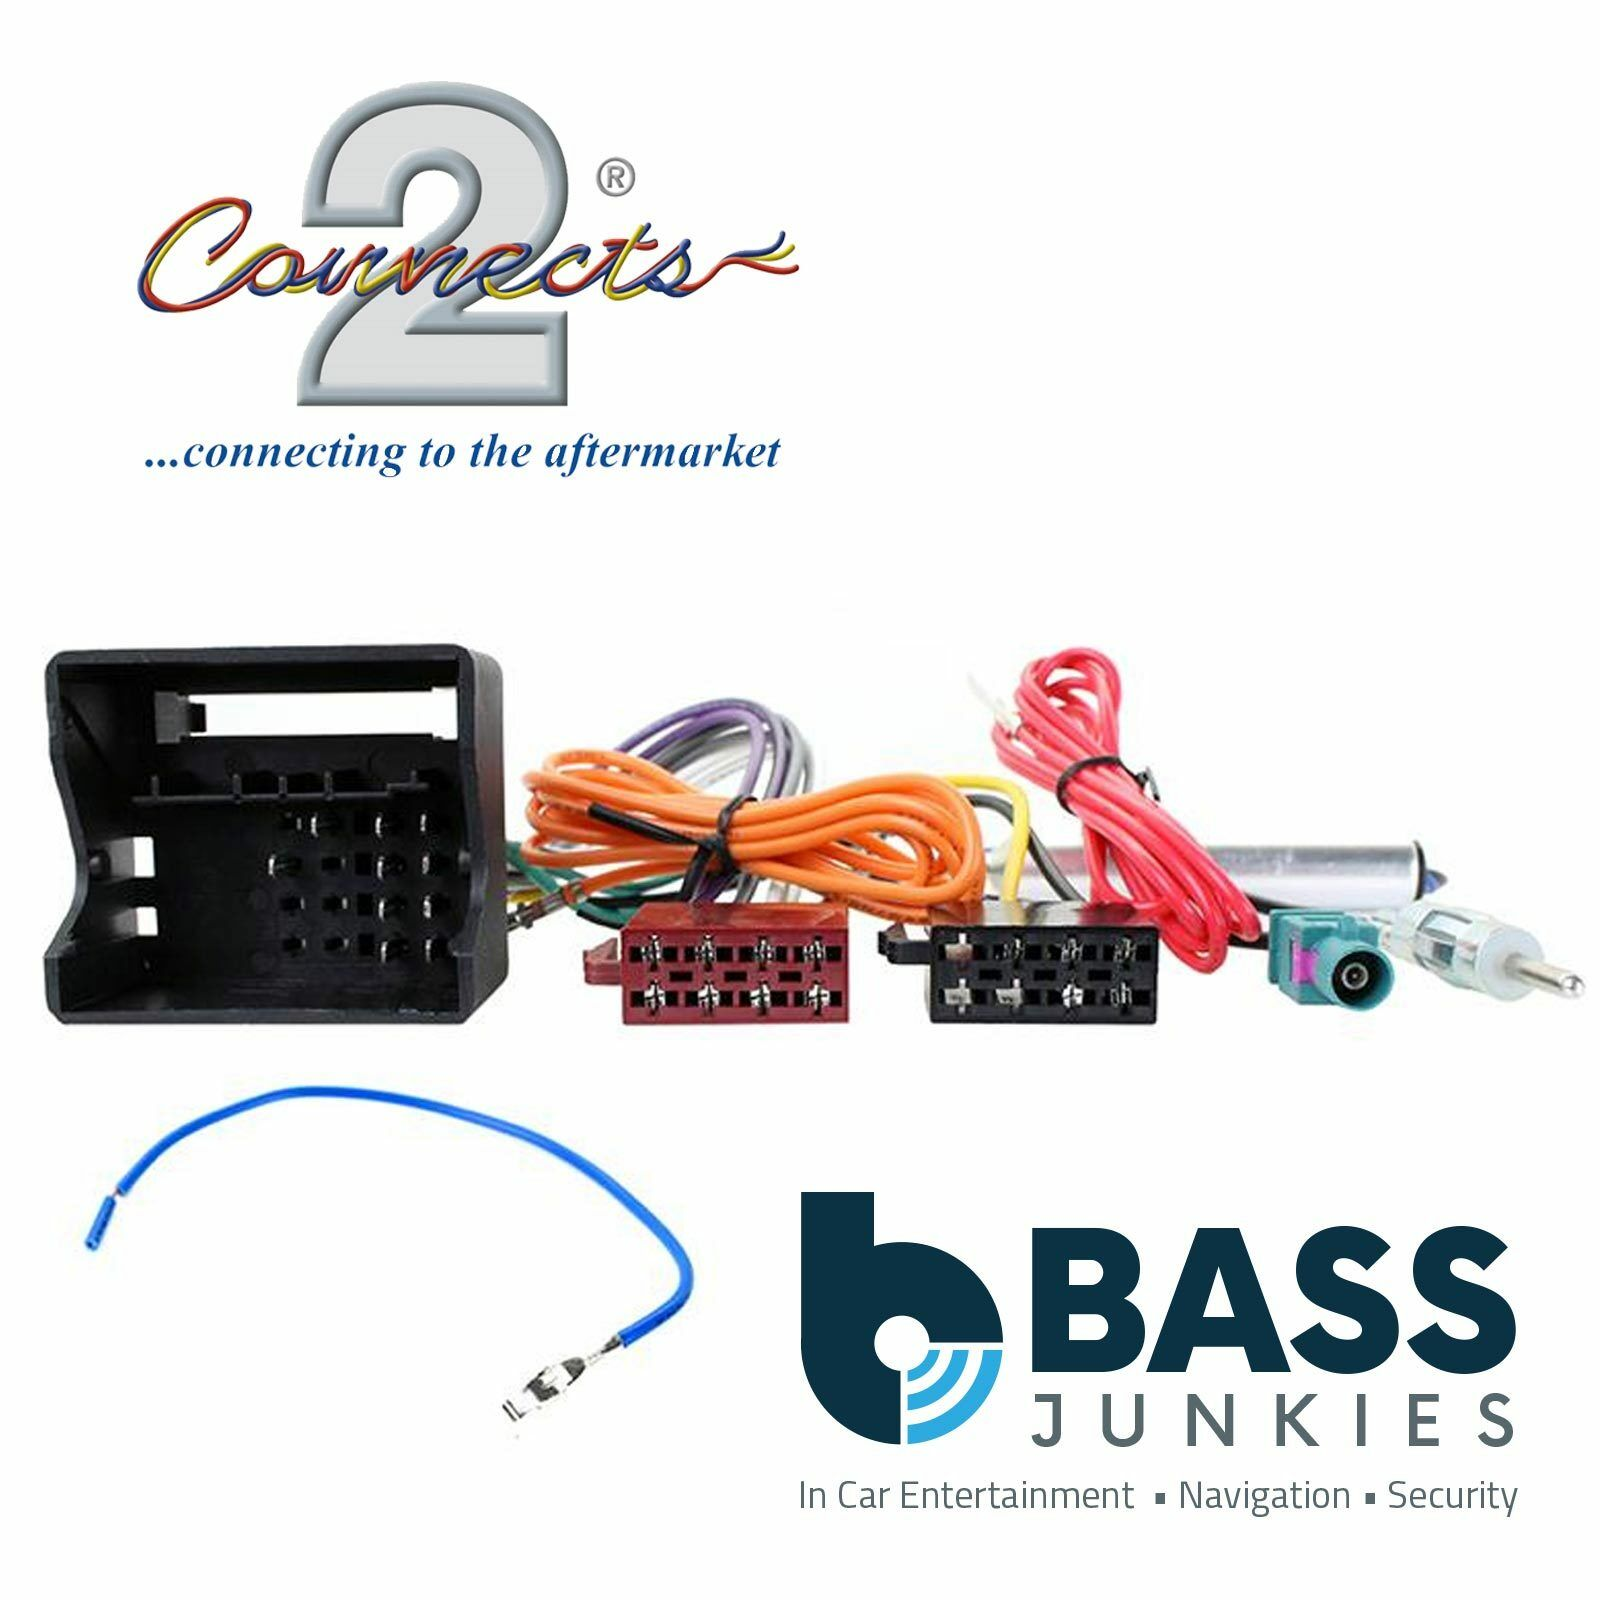 Volkswagen Fox 2005 Onwards Car Stereo Iso Wiring Harness Ct20vw08 Aftermarket For Saab 1 Of 1free Shipping See More